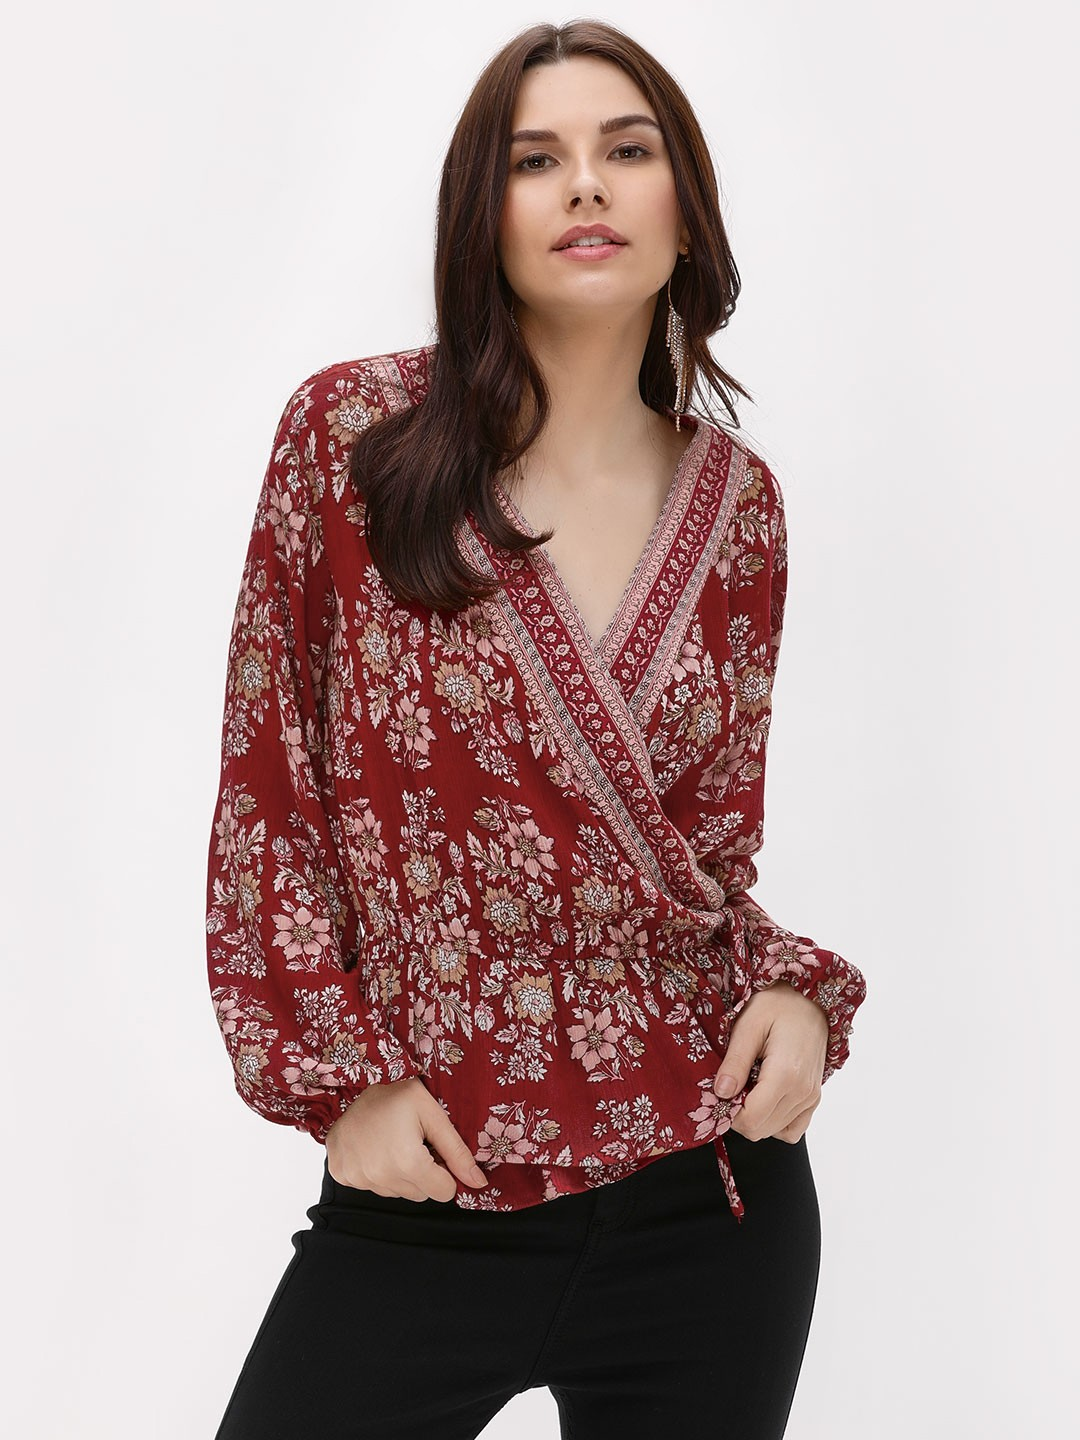 Kisscoast Red Floral Print Wrap Top 1